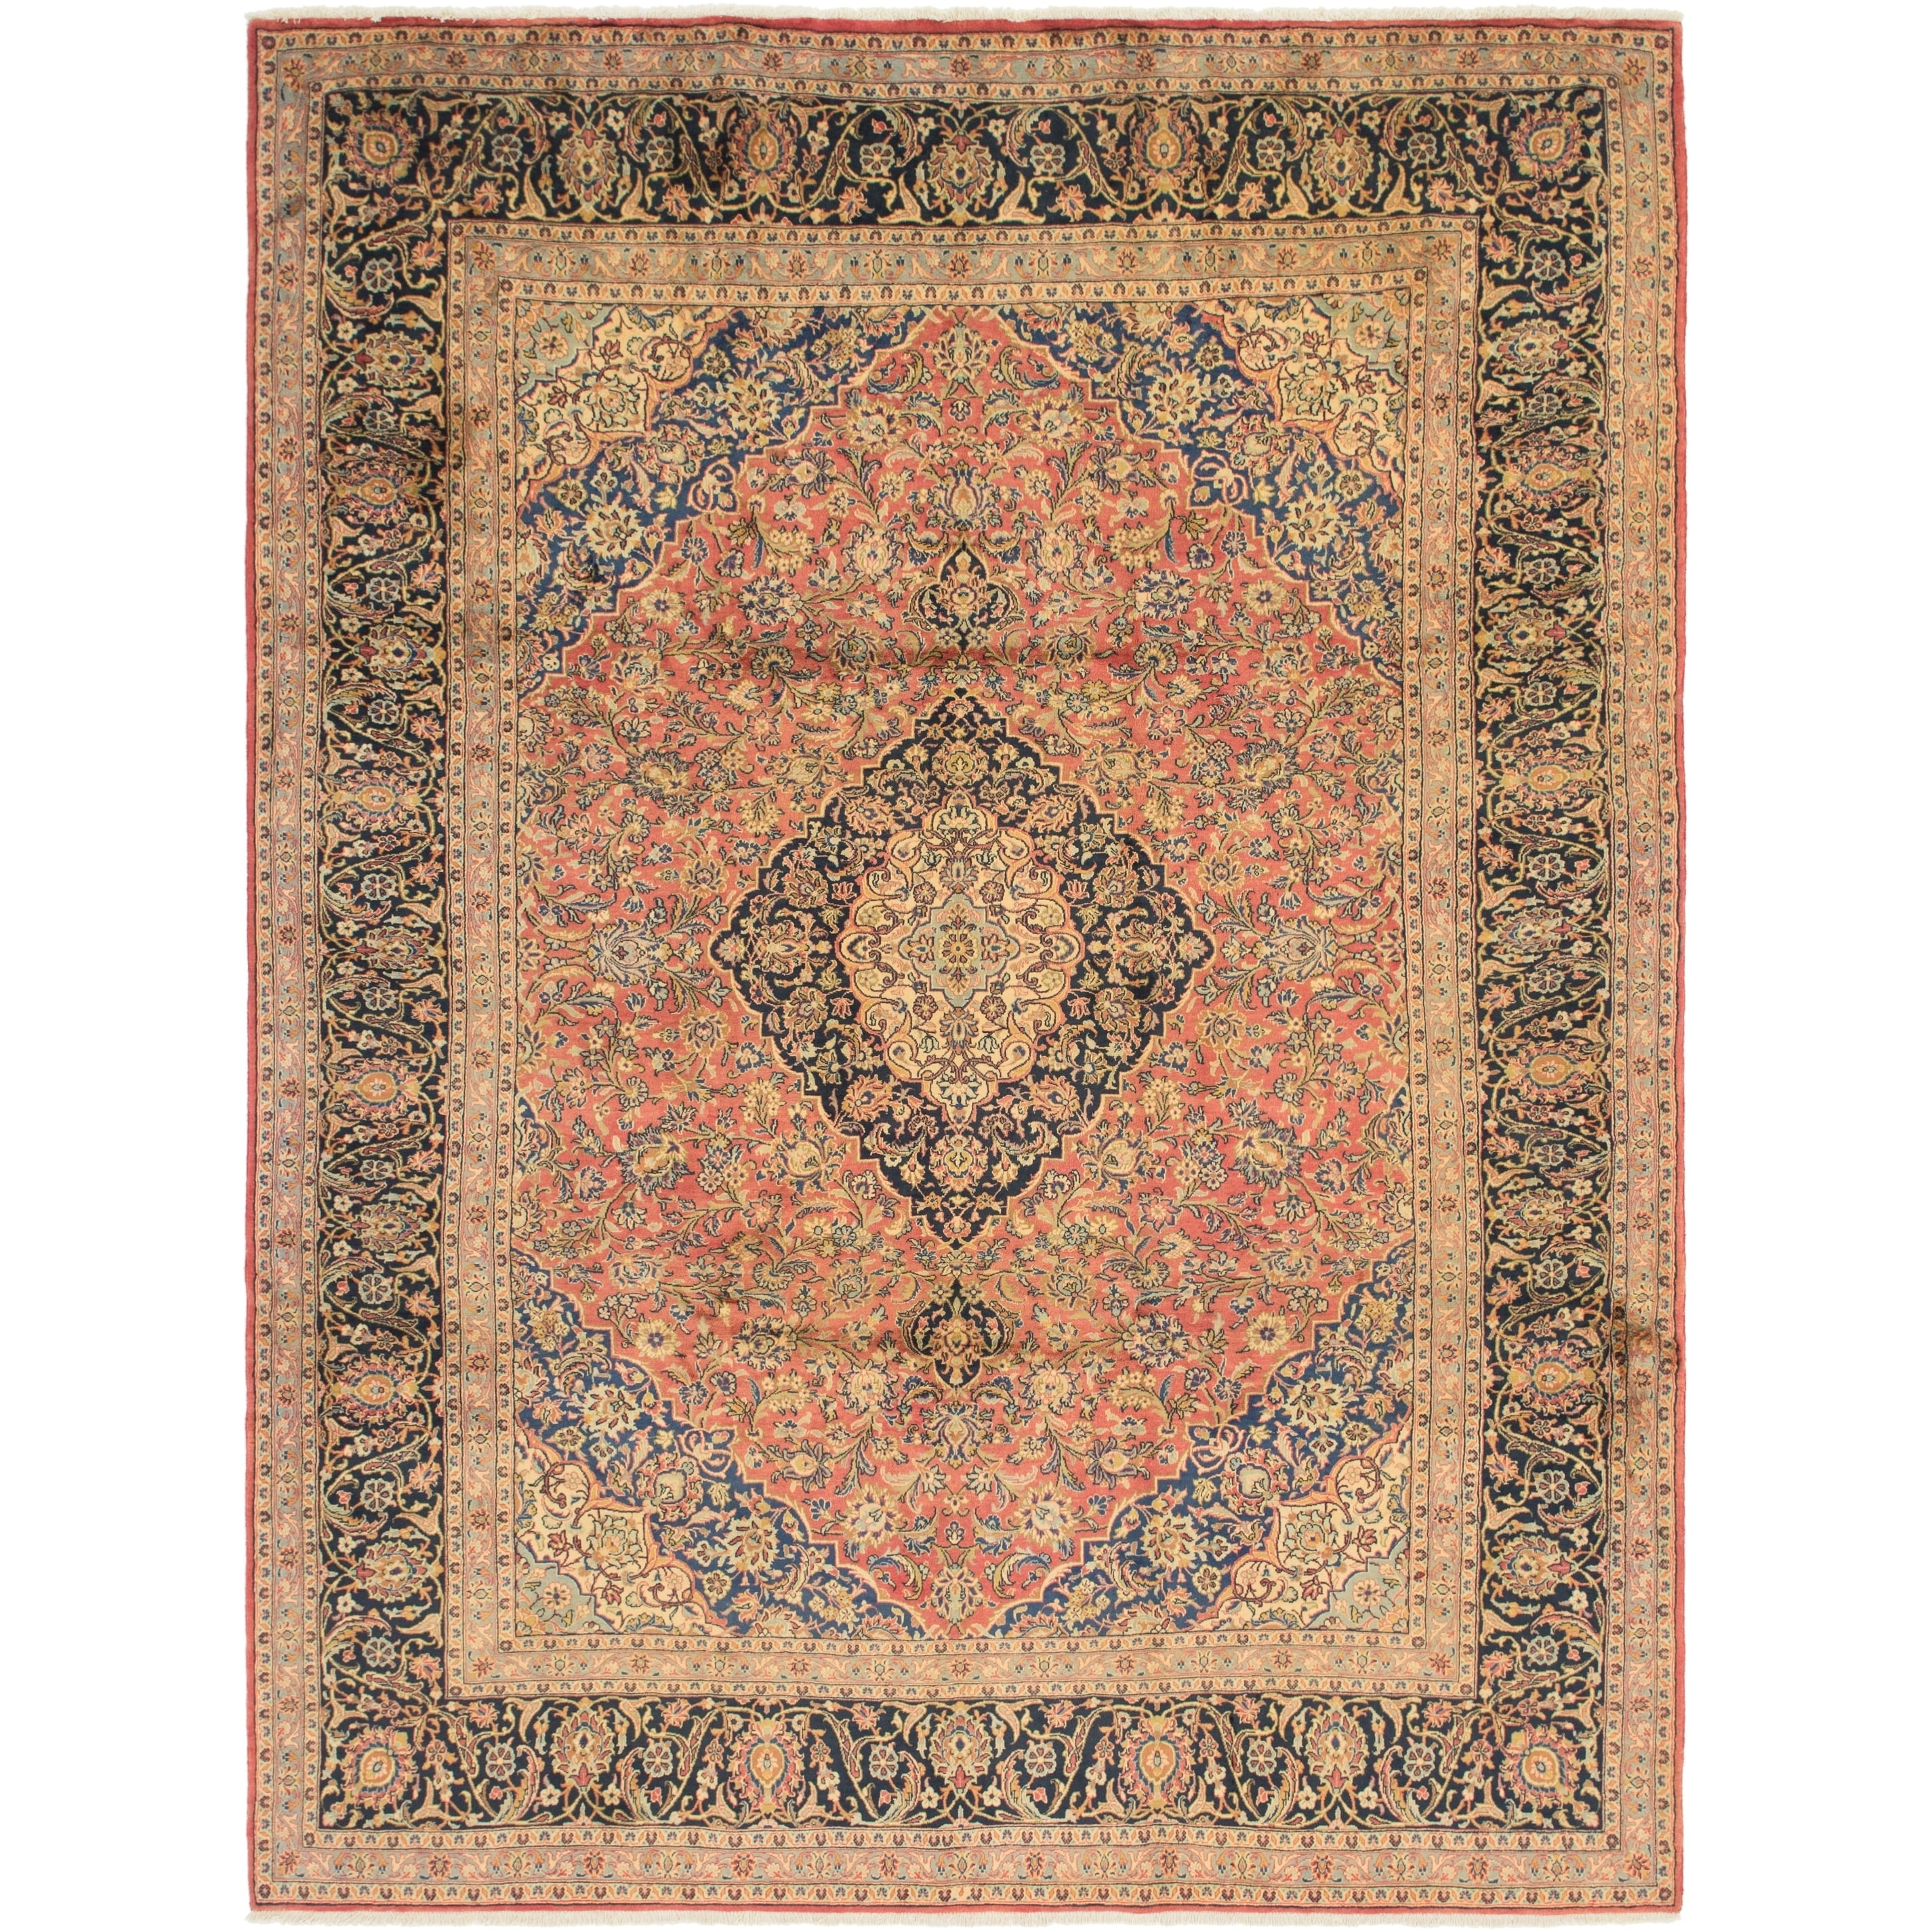 Hand Knotted Kashan Semi Antique Wool Area Rug - 8 3 x 11 (Red - 8 3 x 11)